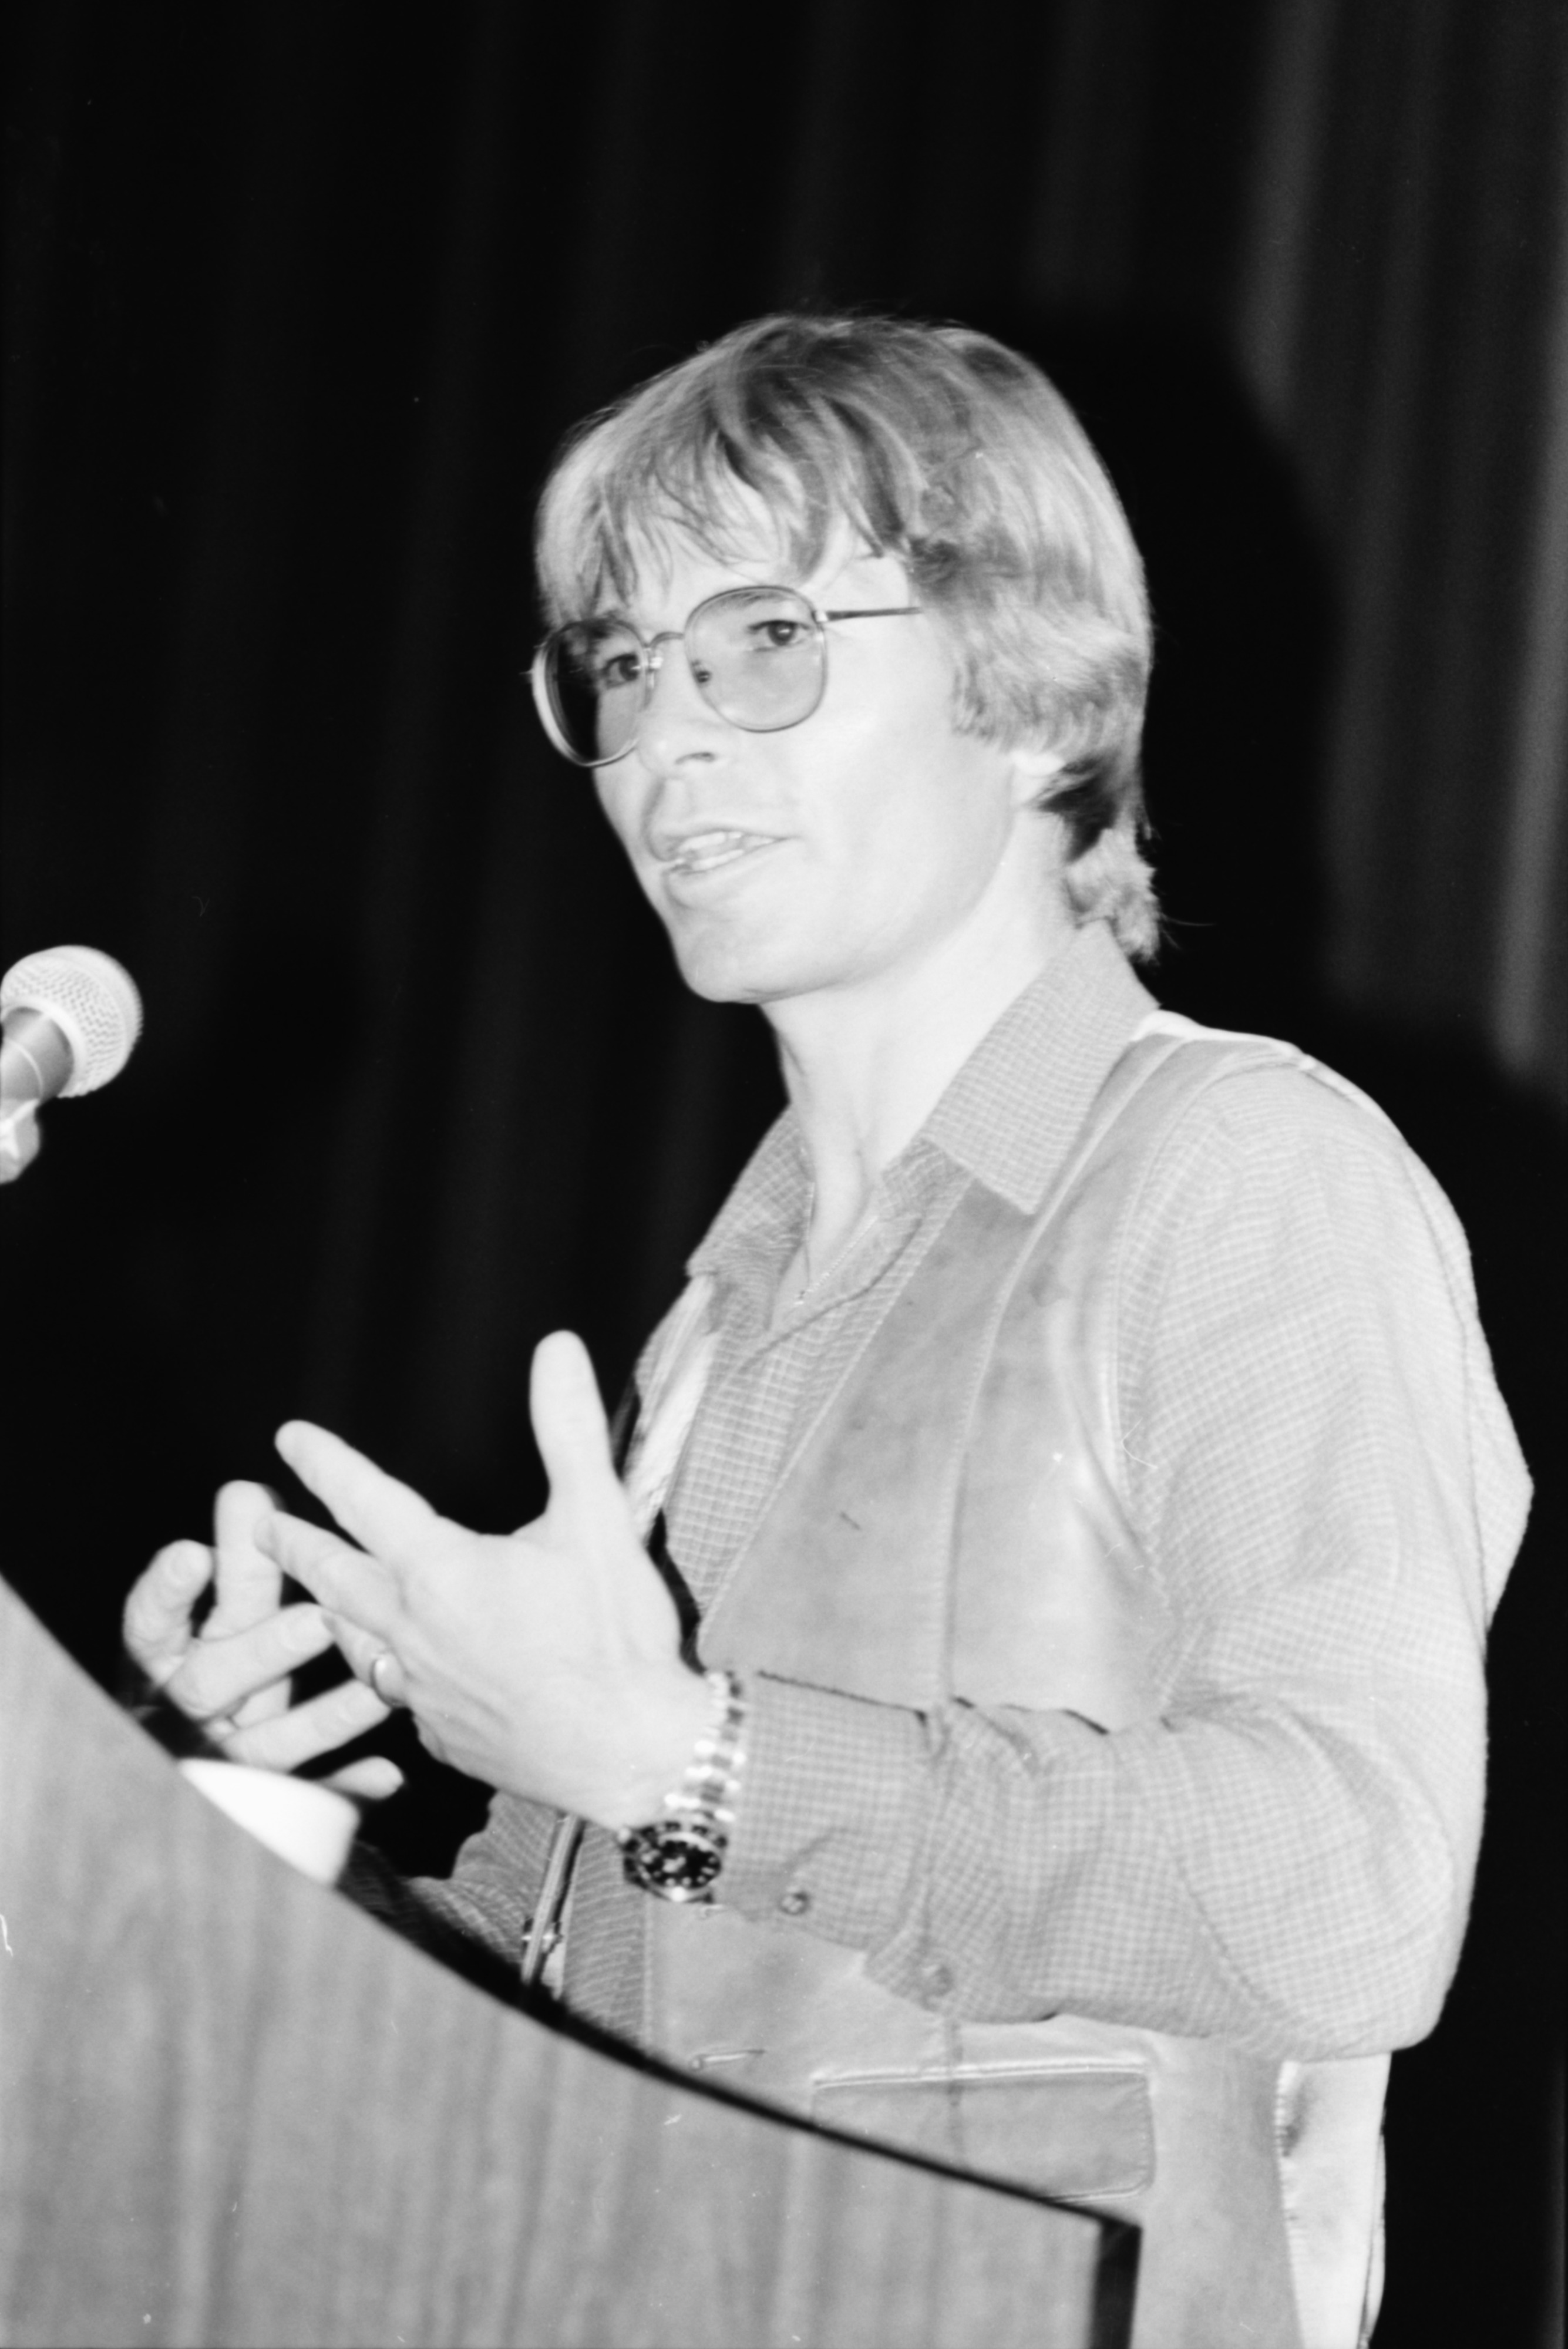 John Denver at the Michigan Theater, April 1980 image